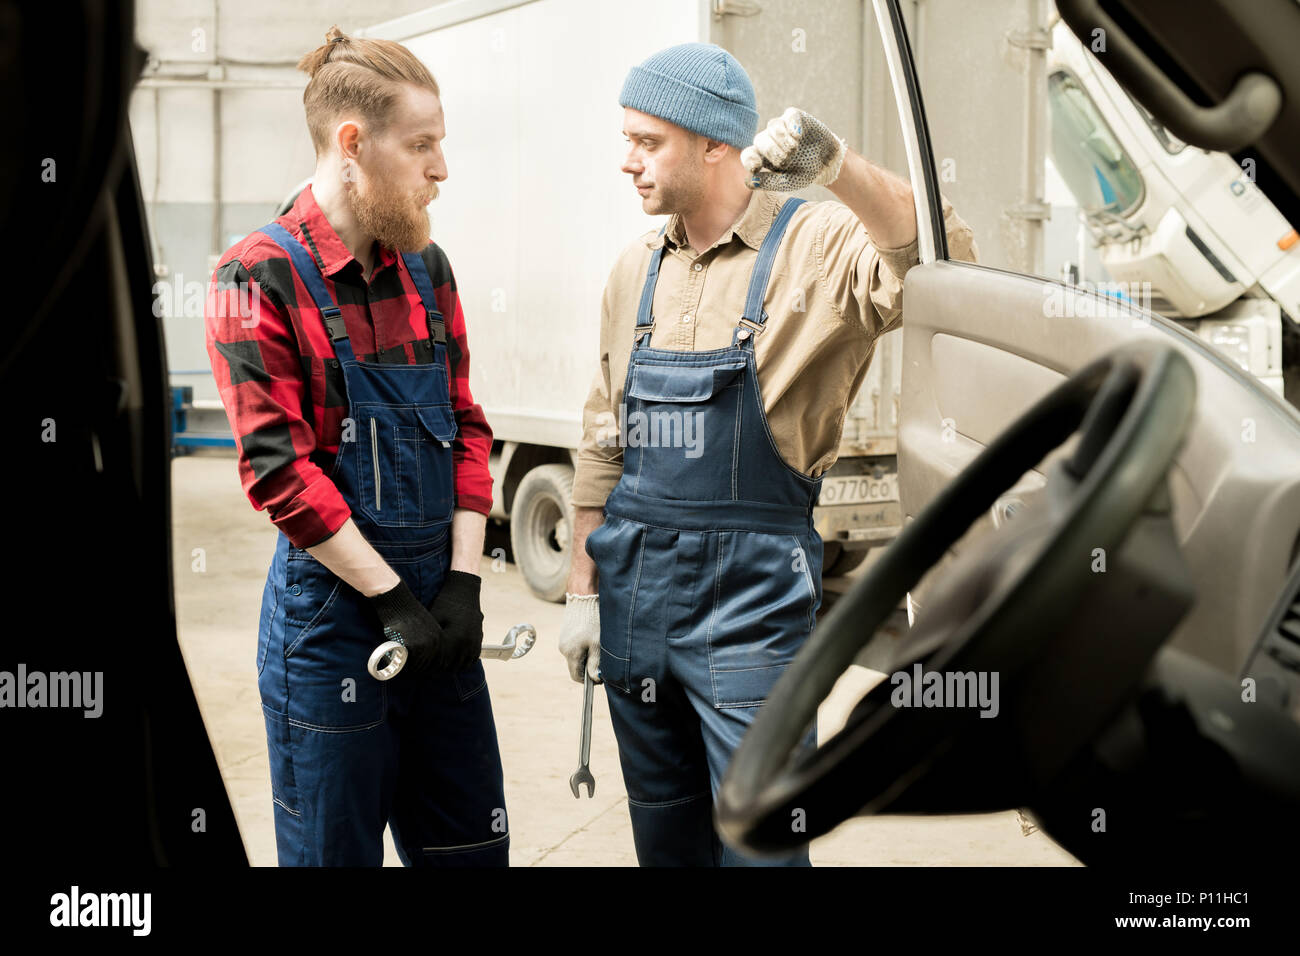 Auto Technicians Discussing Work - Stock Image